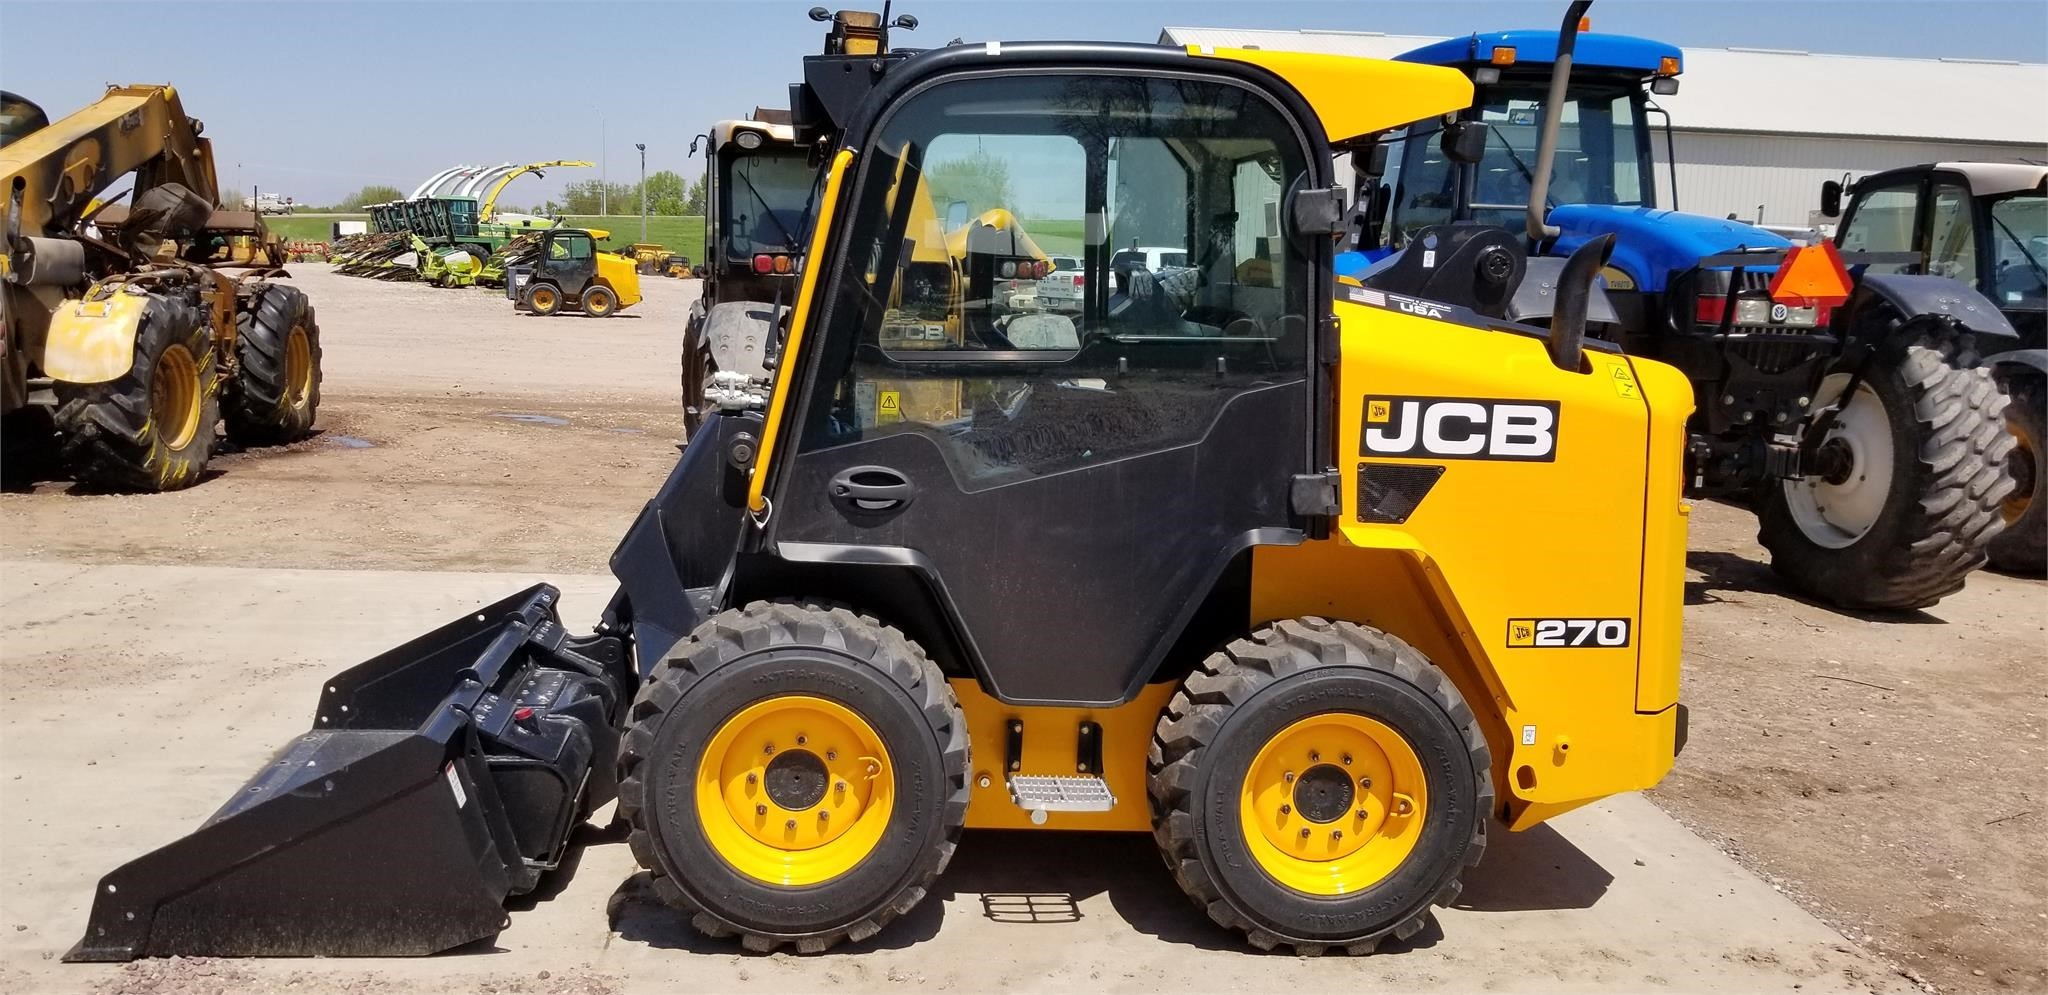 2019 JCB 270 Skid Steer